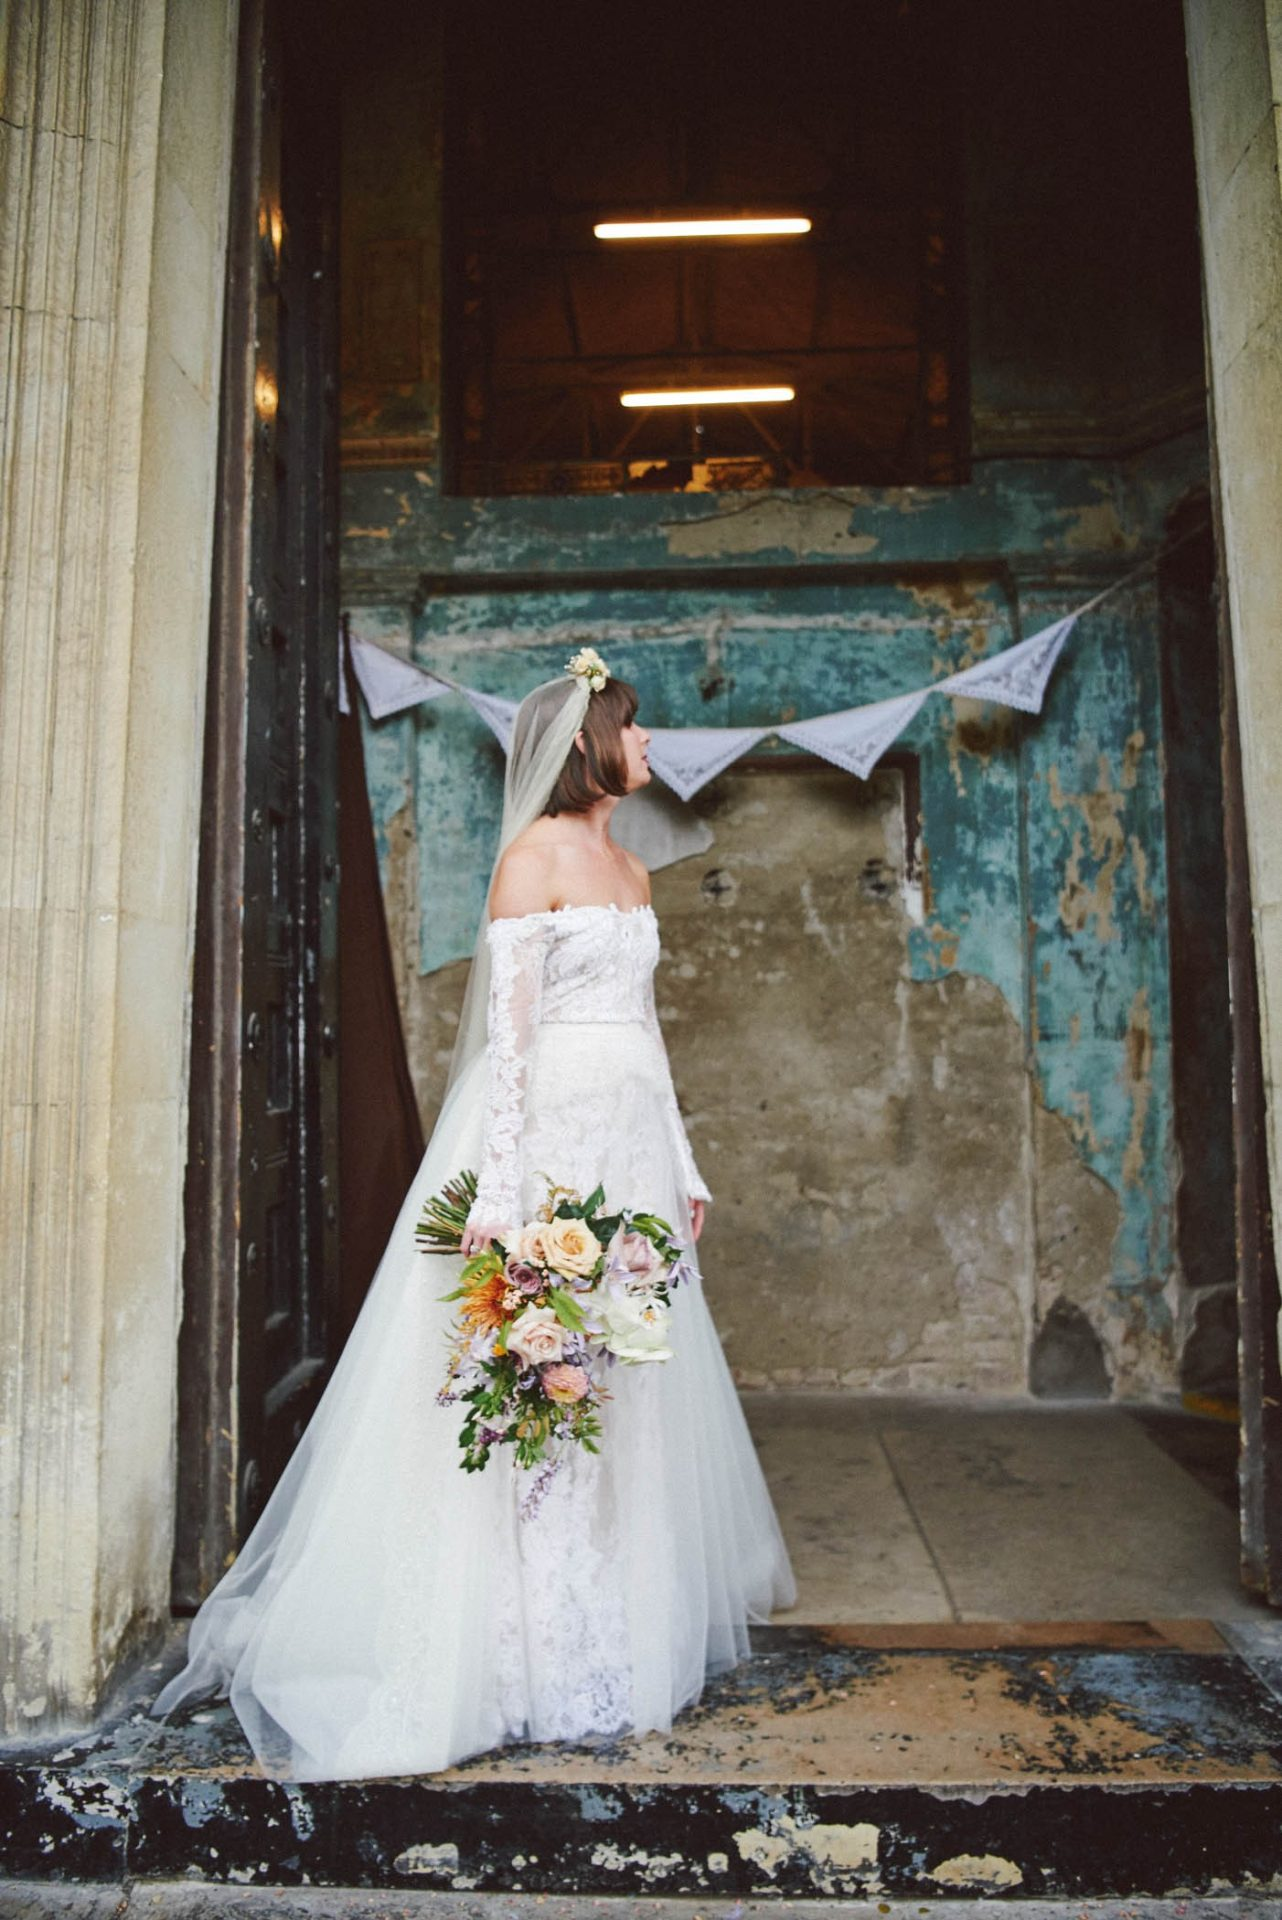 bride in vintage wedding dress stood in front of a decaying building called the Asylum